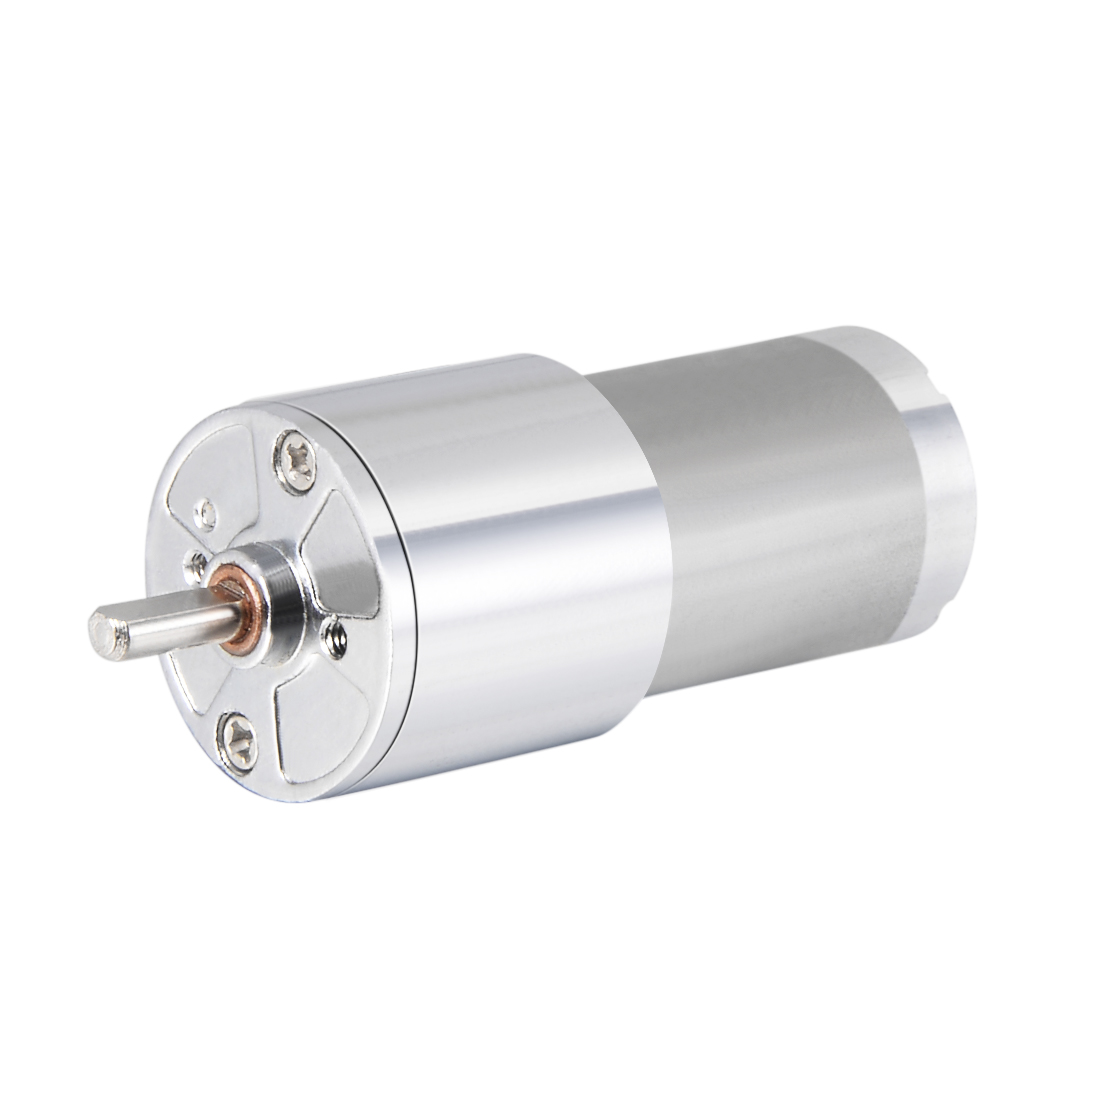 12V DC 25 RPM Gear Motor High Torque Reduction Gearbox Centric Output D Shaft